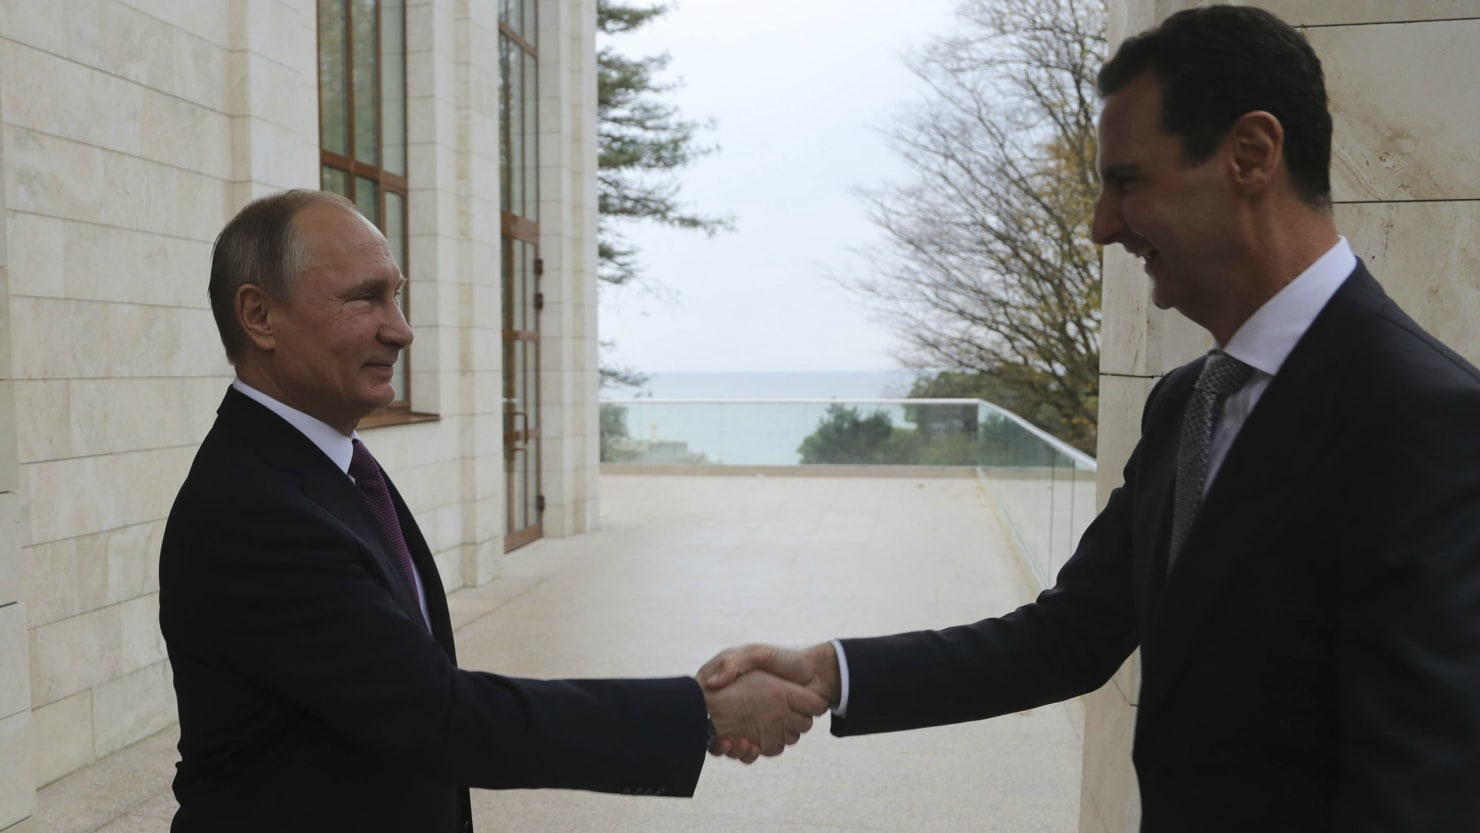 Putin to speak with trump after hosting syrias assad in sochi the putin to speak with trump after hosting syrias assad in sochi kristyandbryce Images